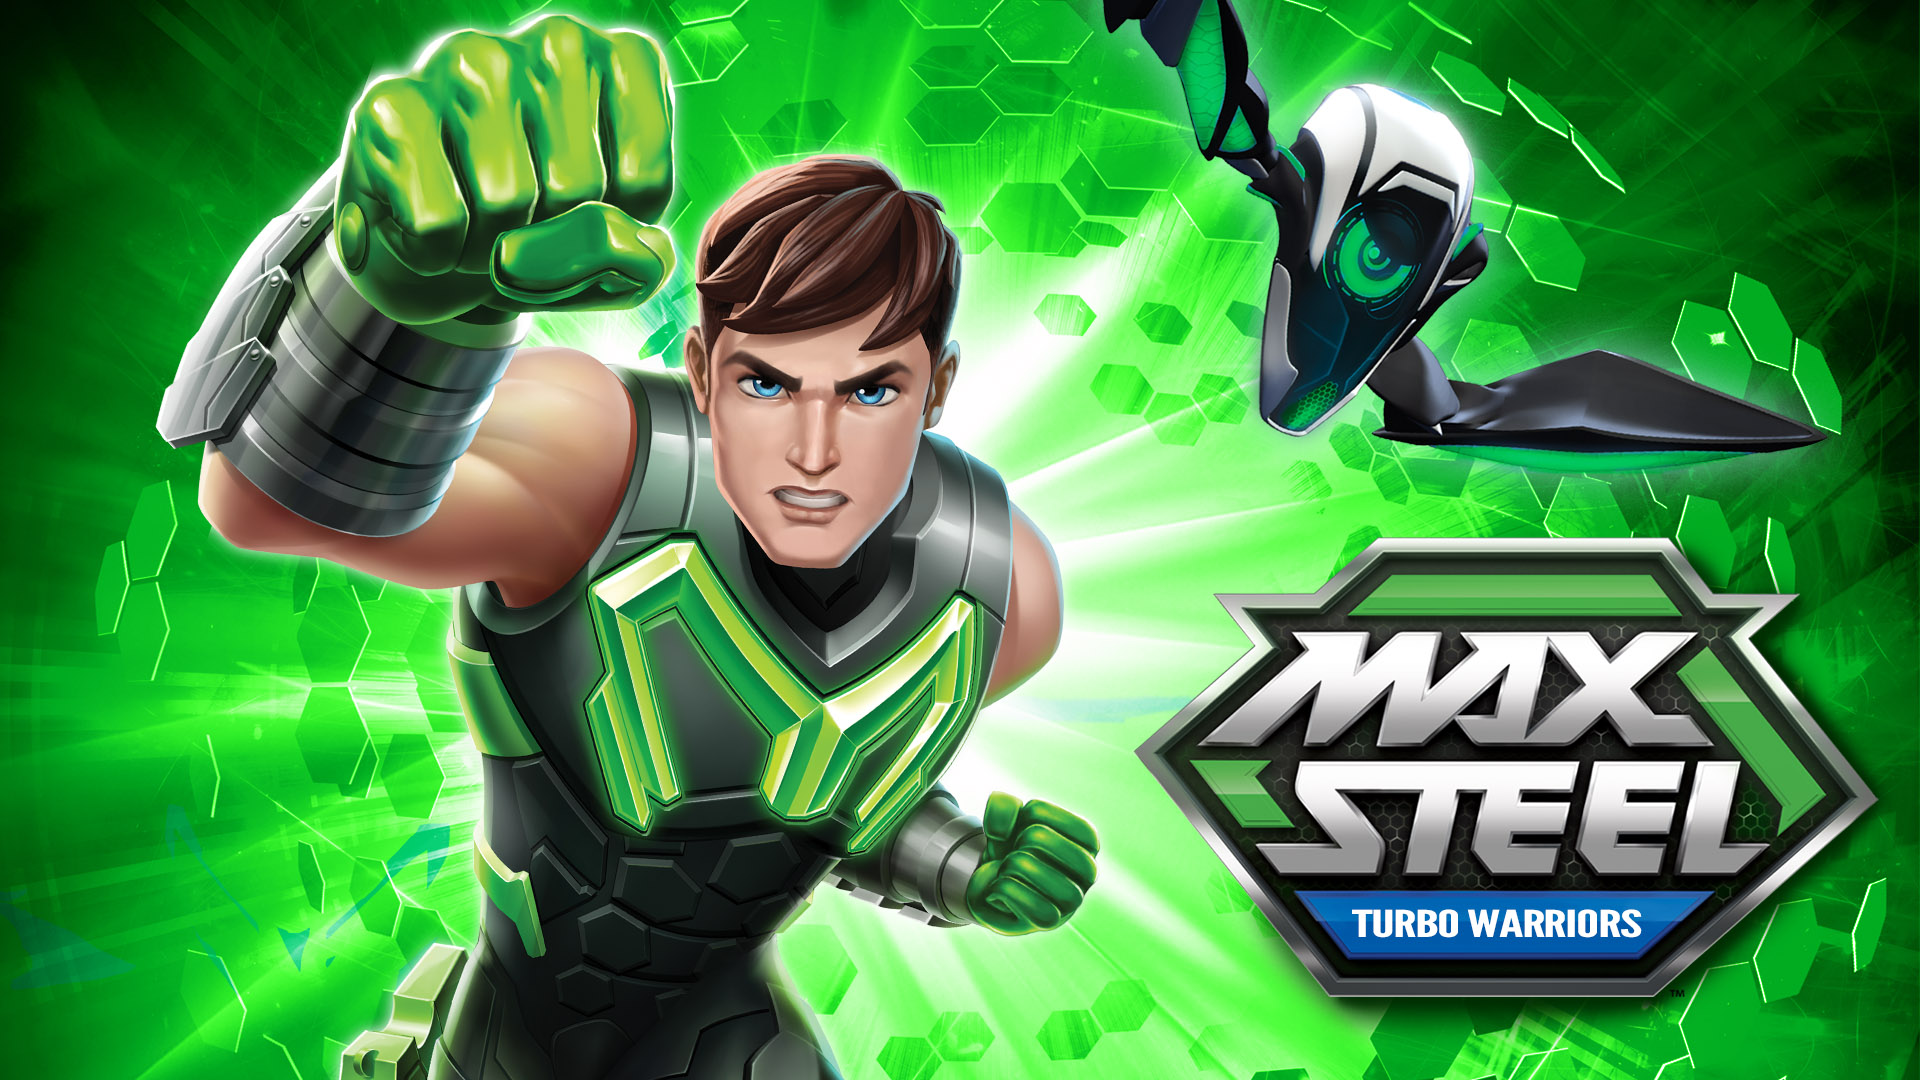 Max Steel Turbo Warriors